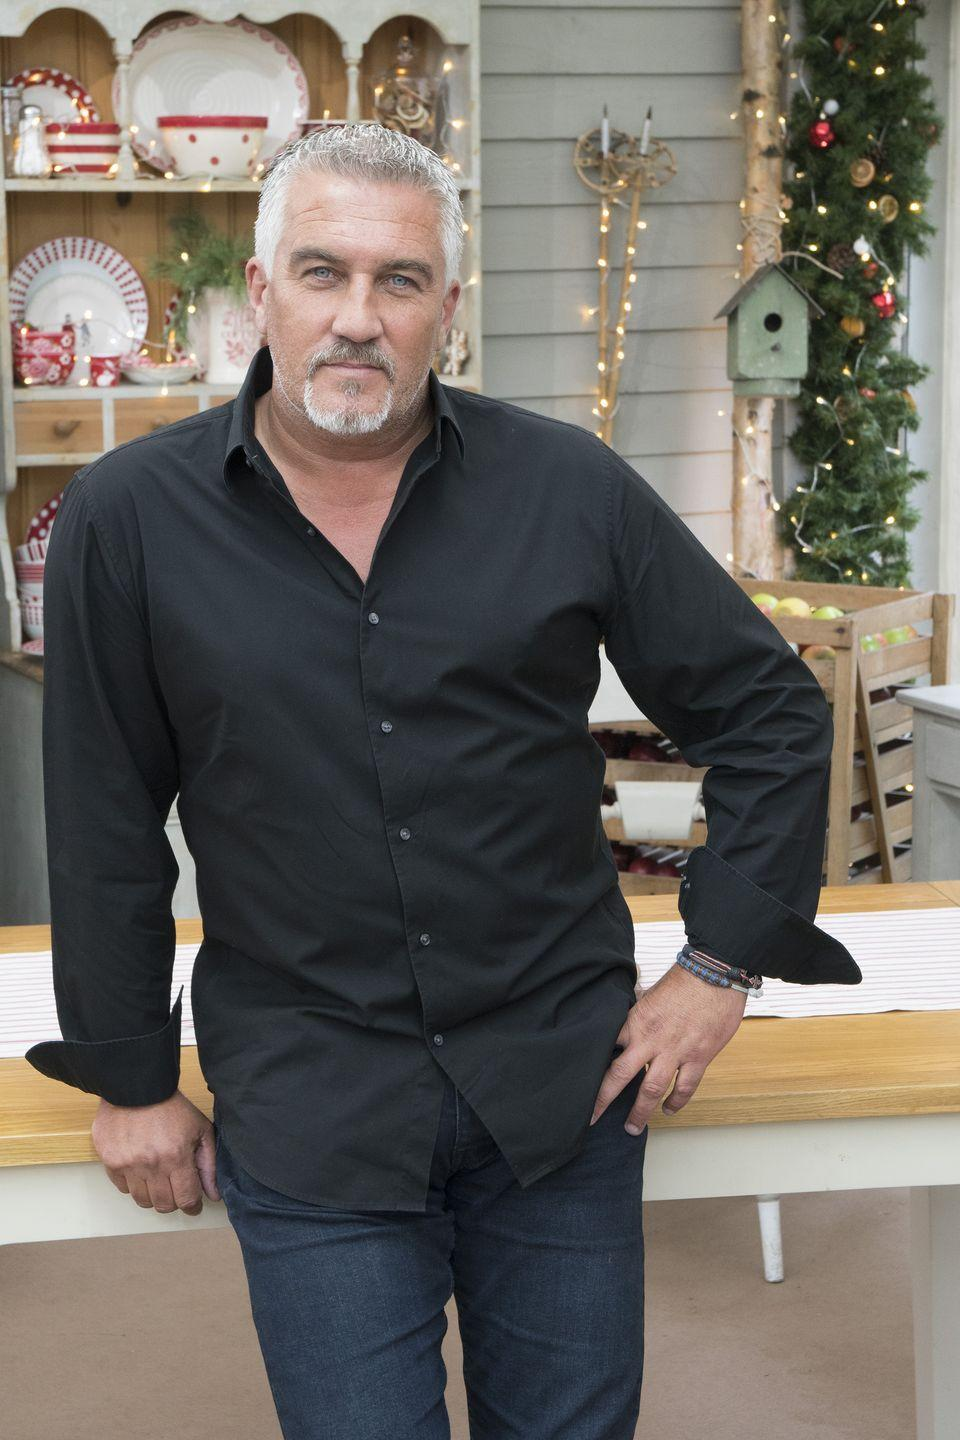 """<p>The Paul Hollywood Artisan Bread company opened in 2007 and closed seven years later. """"It's a huge headache and massive problem because I wasn't there enough,"""" he <a href=""""https://www.foodmanufacture.co.uk/Article/2014/05/28/Paul-Hollywood-closes-bakery"""" rel=""""nofollow noopener"""" target=""""_blank"""" data-ylk=""""slk:explained"""" class=""""link rapid-noclick-resp"""">explained</a> then. His television commitments kept him from keeping it afloat.</p>"""